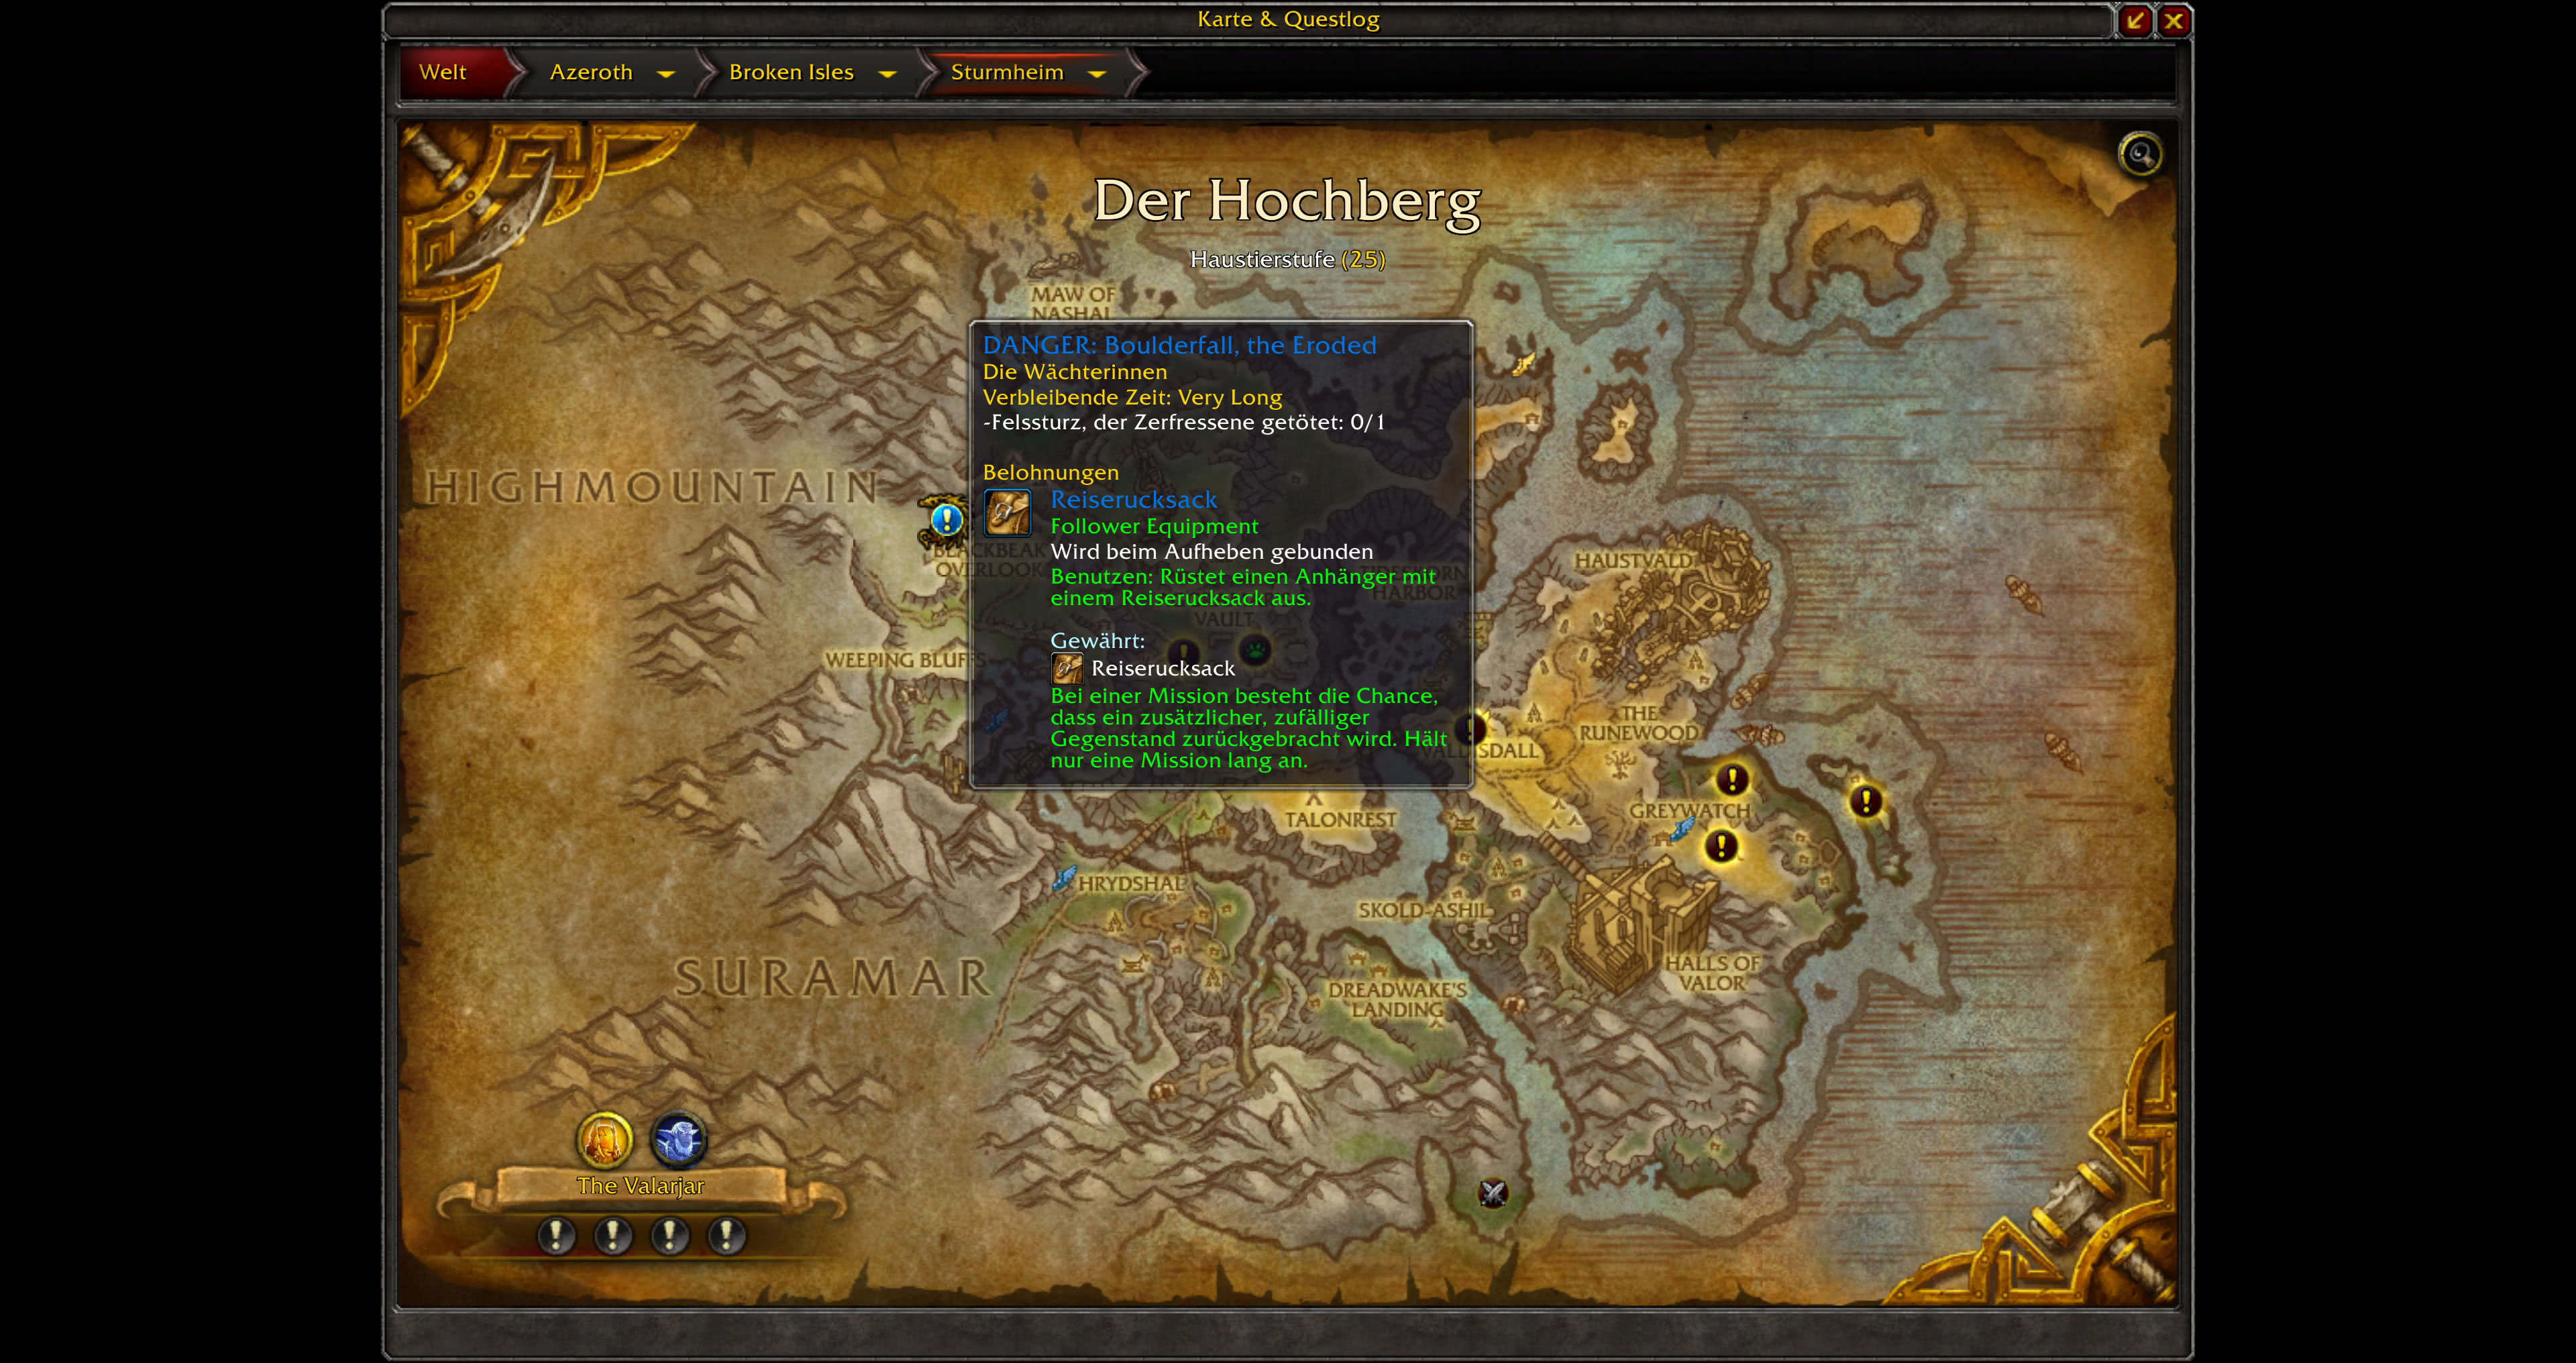 how to continue quest in wow